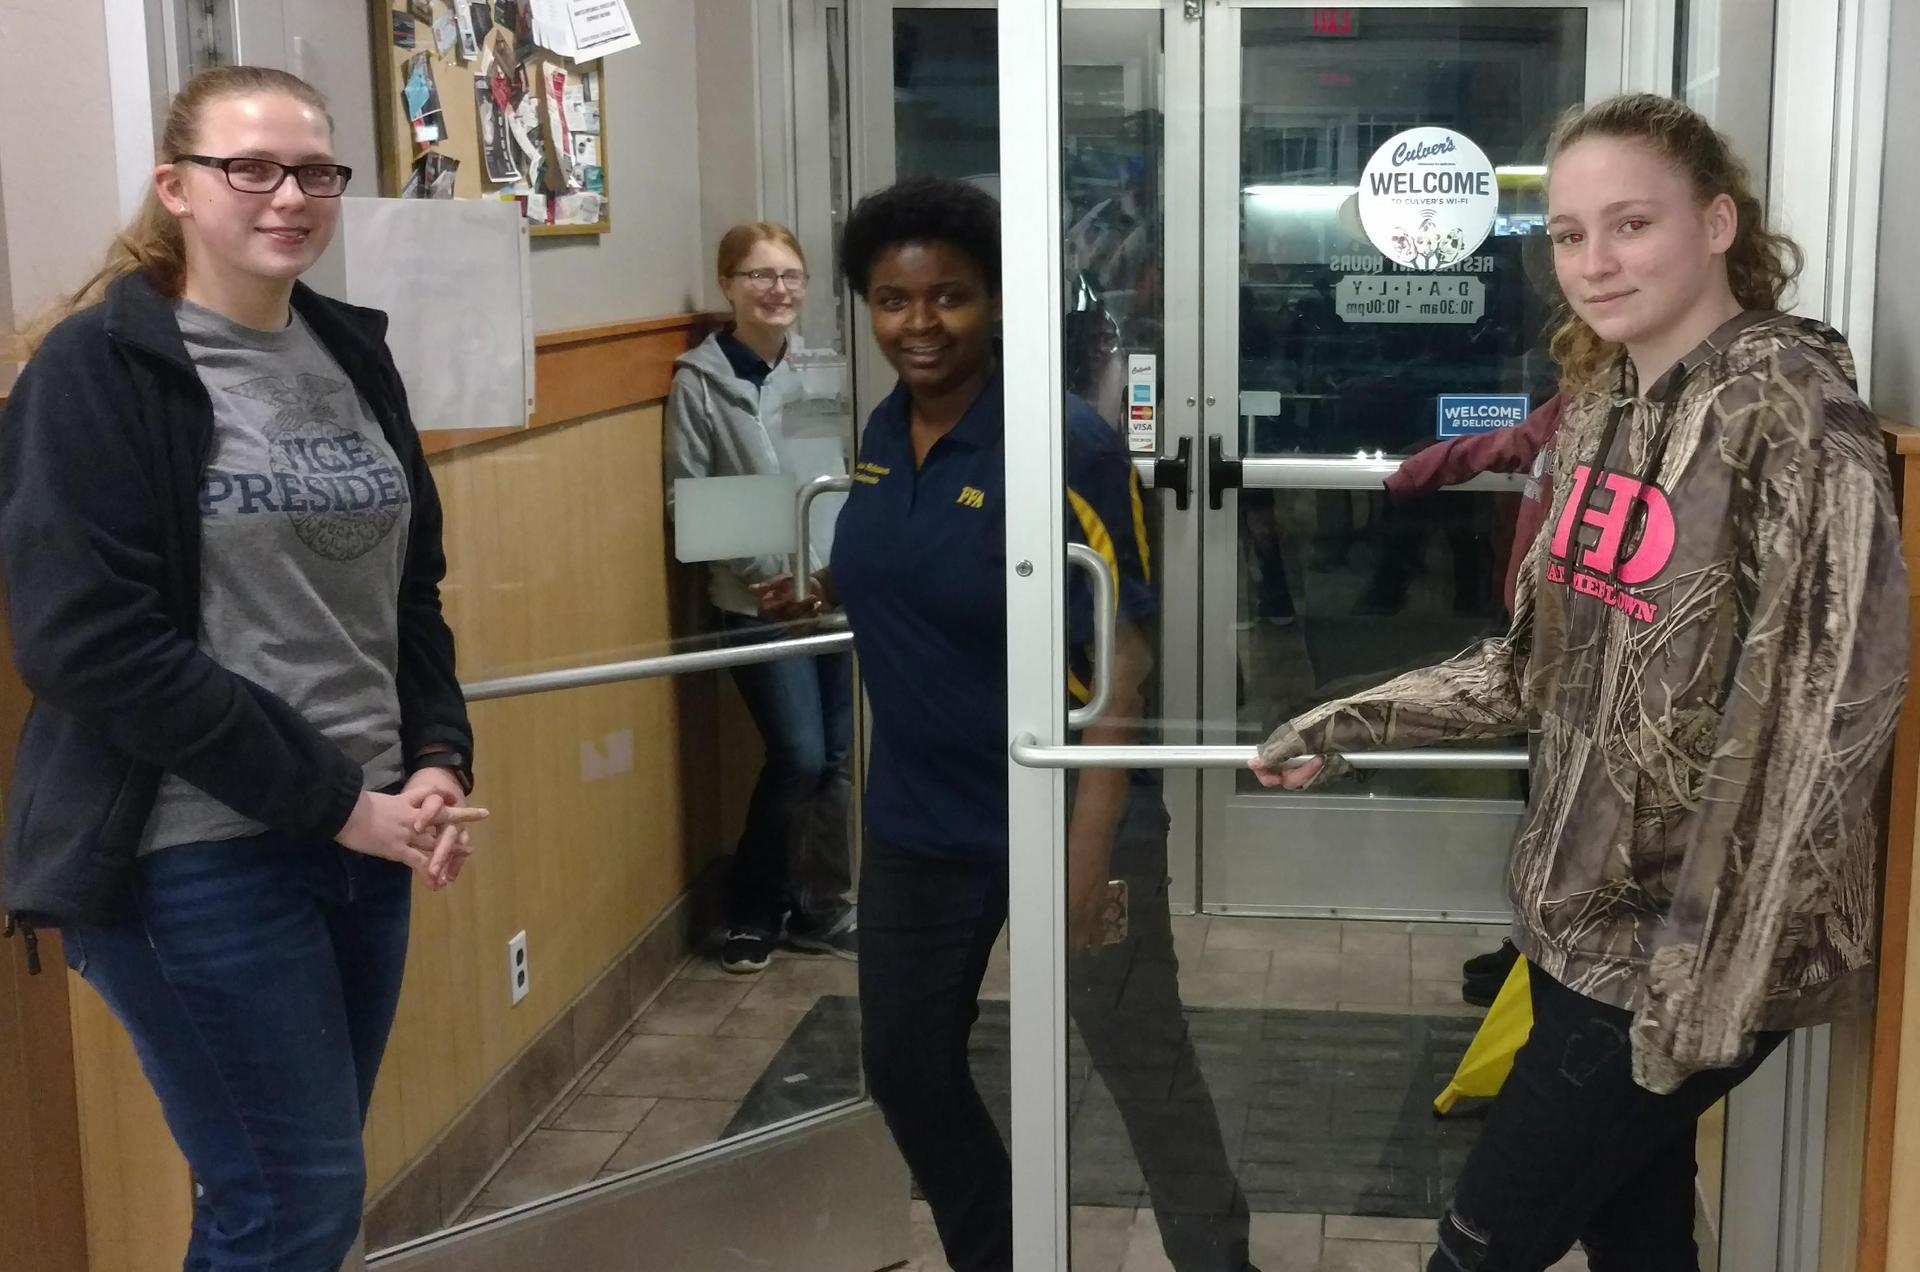 Tending Door at Culver's night